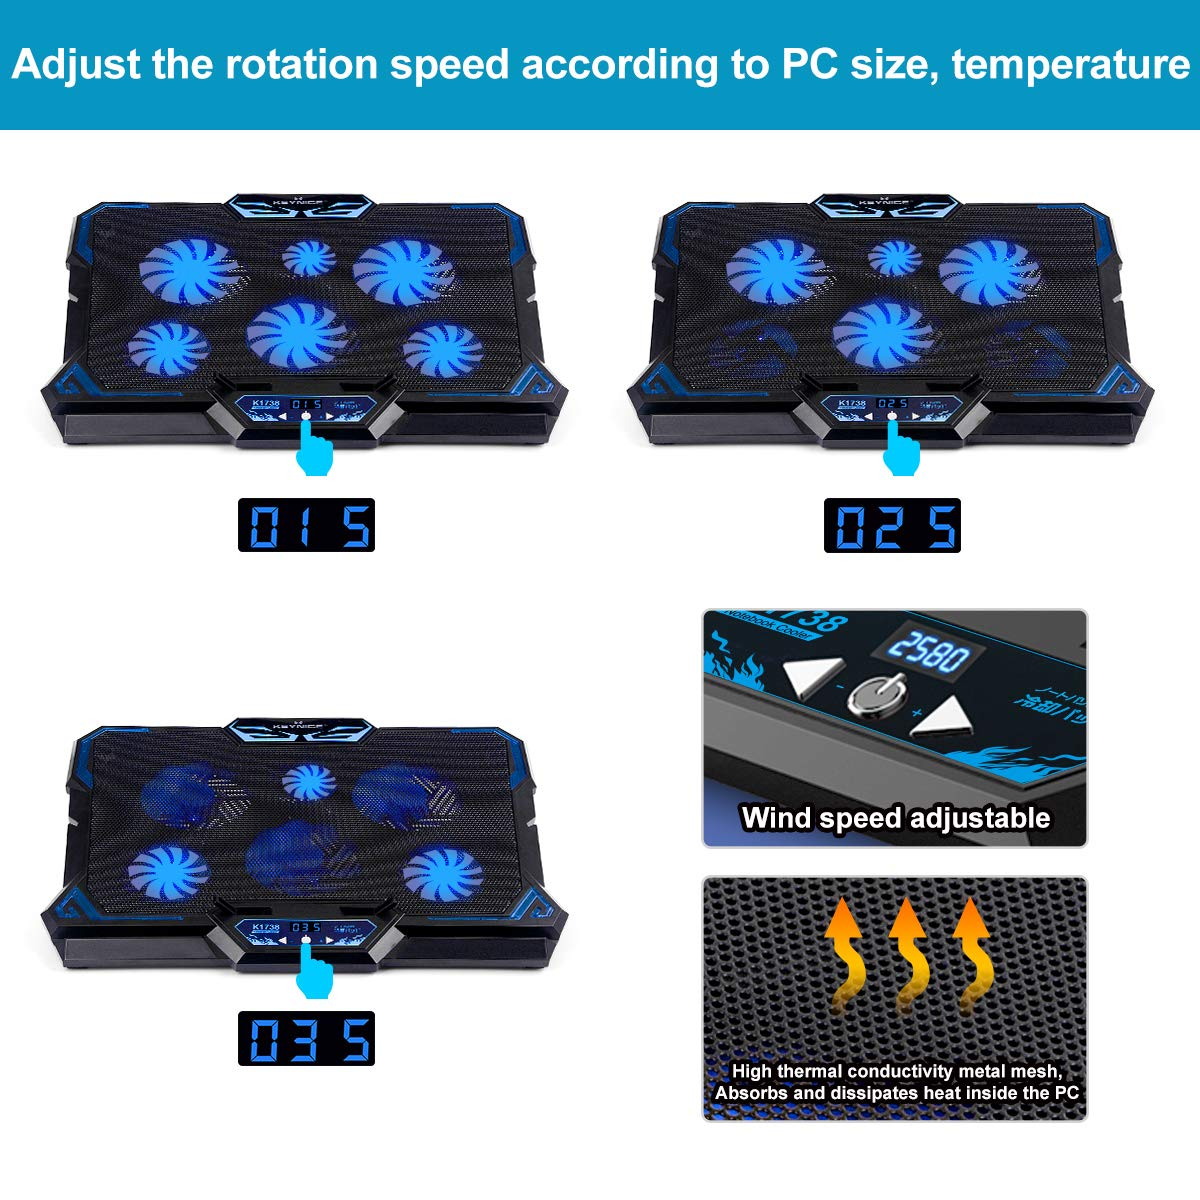 KEYNICE Laptop Cooling Pad, Notebook Cooler with 6 Quiet Fan, Dual USB Port, 5 Wind Speed Adjustable, Blue LED Light, Fit 12''-17'' Computer, Portable Cooler Pad with LCD Screen, Gaming Laptop Cooler by KEYNICE (Image #4)